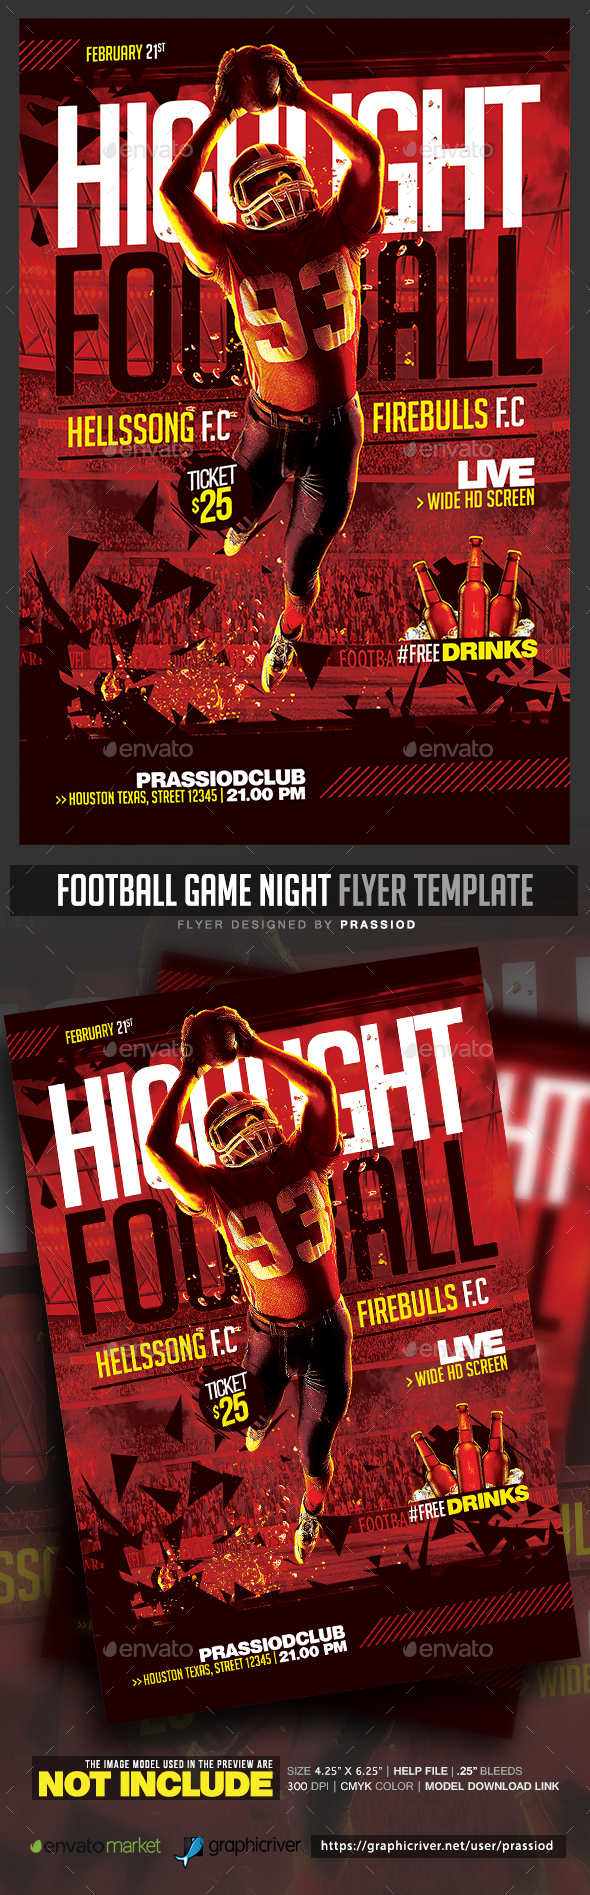 Football Game Night Flyer Template - Sports Events